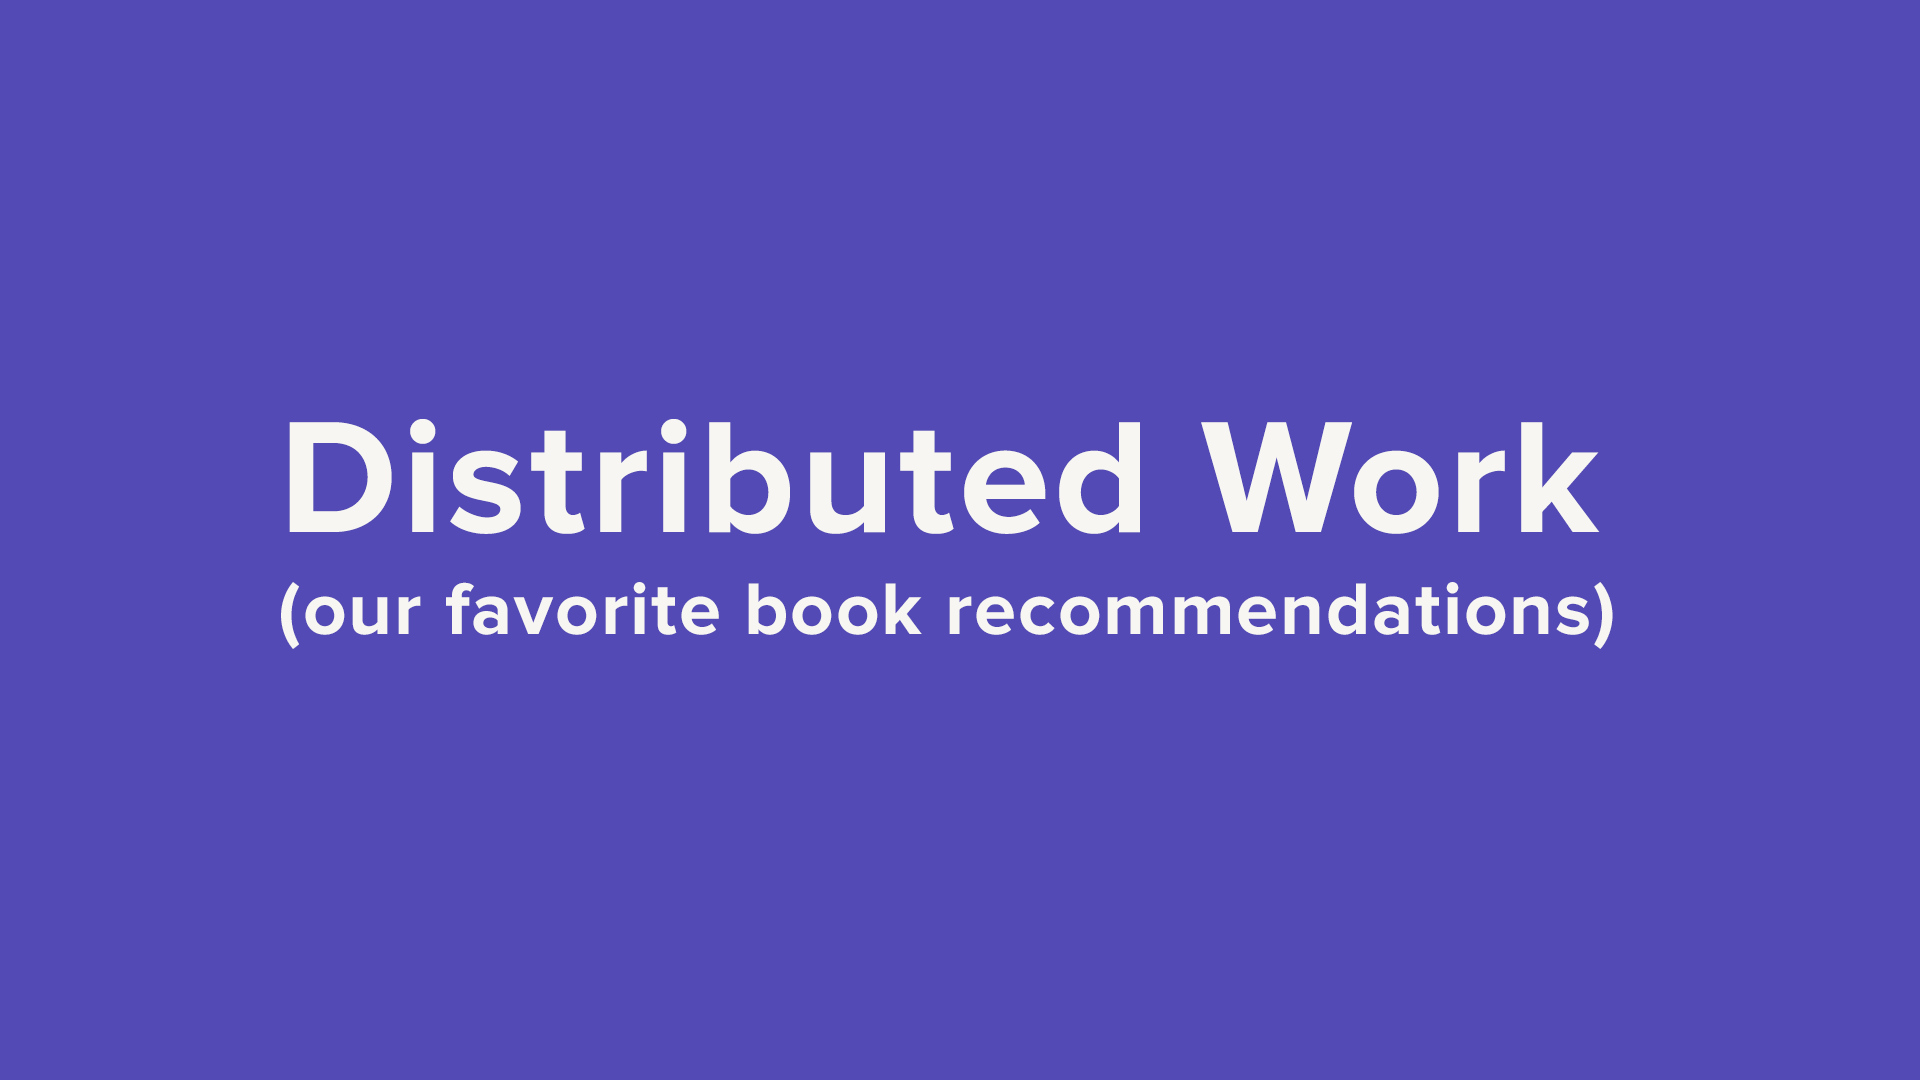 Distributed Work Books